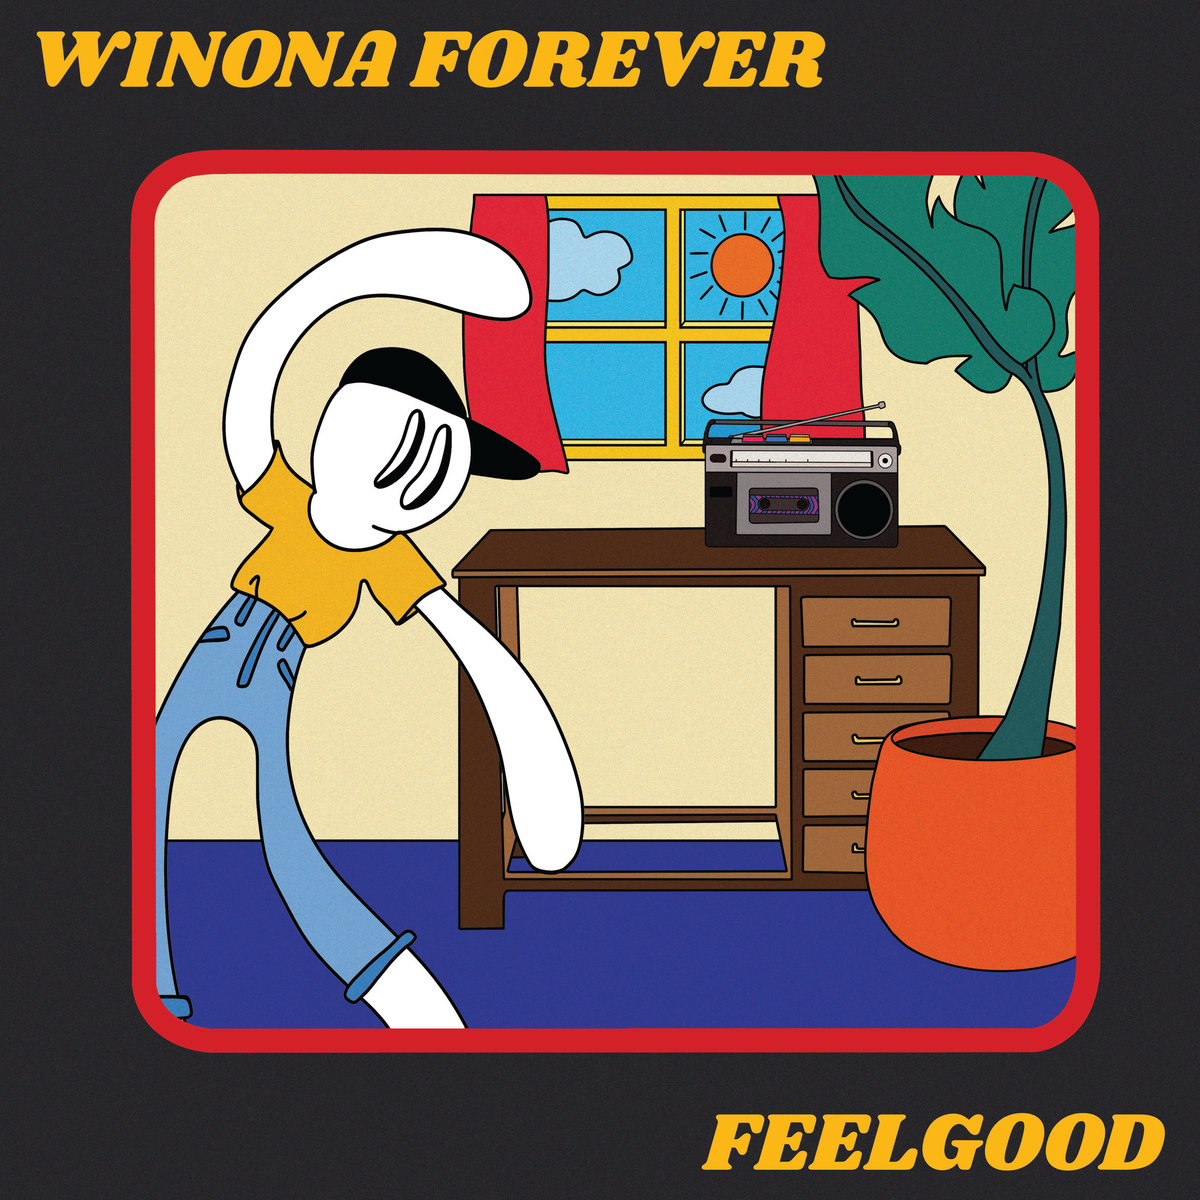 Ryan's Reviews: Feelgood by Winona Forever